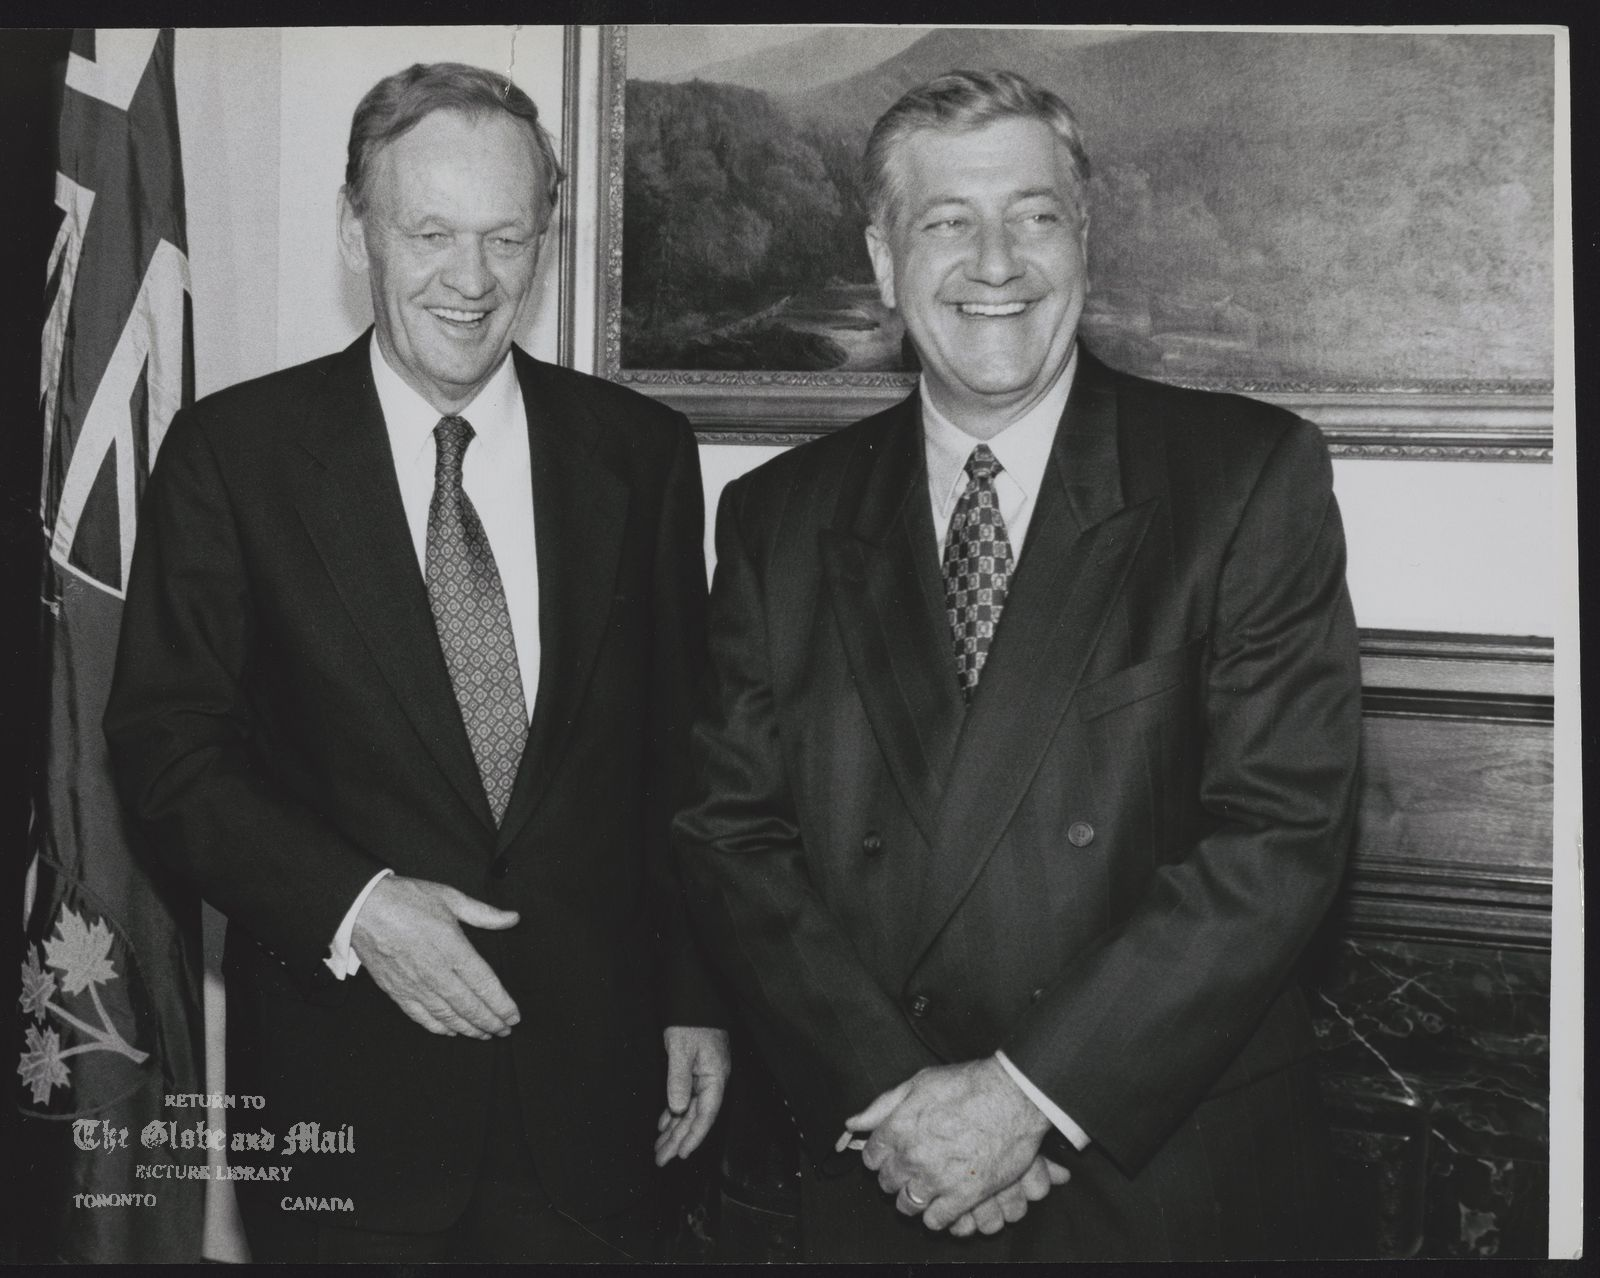 JEAN CHRETIEN CANADA. PRIME MINISTER PRIME MINISTER JEAN CHRETIEN WITH NEWLY ELECTED ONTARIO PREMIER MIKE HARRIS.